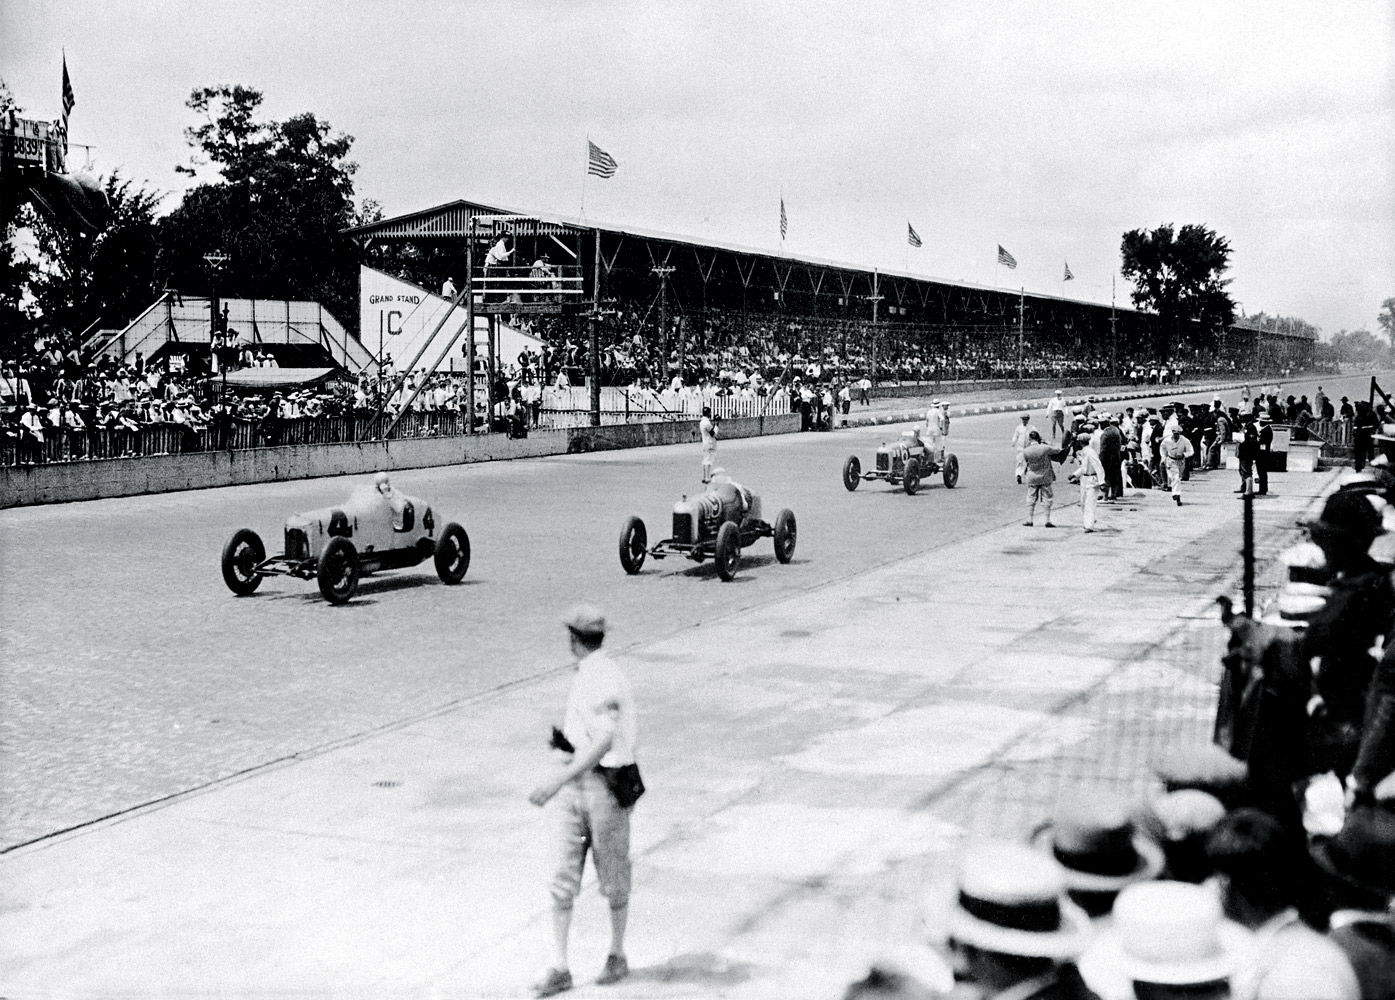 The track isn't the only place to find cars during a race: In the Roaring '20s fans parked their Model T's in the infield. Back then the racing surface exposed a while lot more than a yard of bricks-repaving in asphalt was still a decade away, as was swigging dairy for champs. Rookie Louis Meyer, who would later start the ritual when he became the 500's first three-time winner, was a milkless victor in '28.